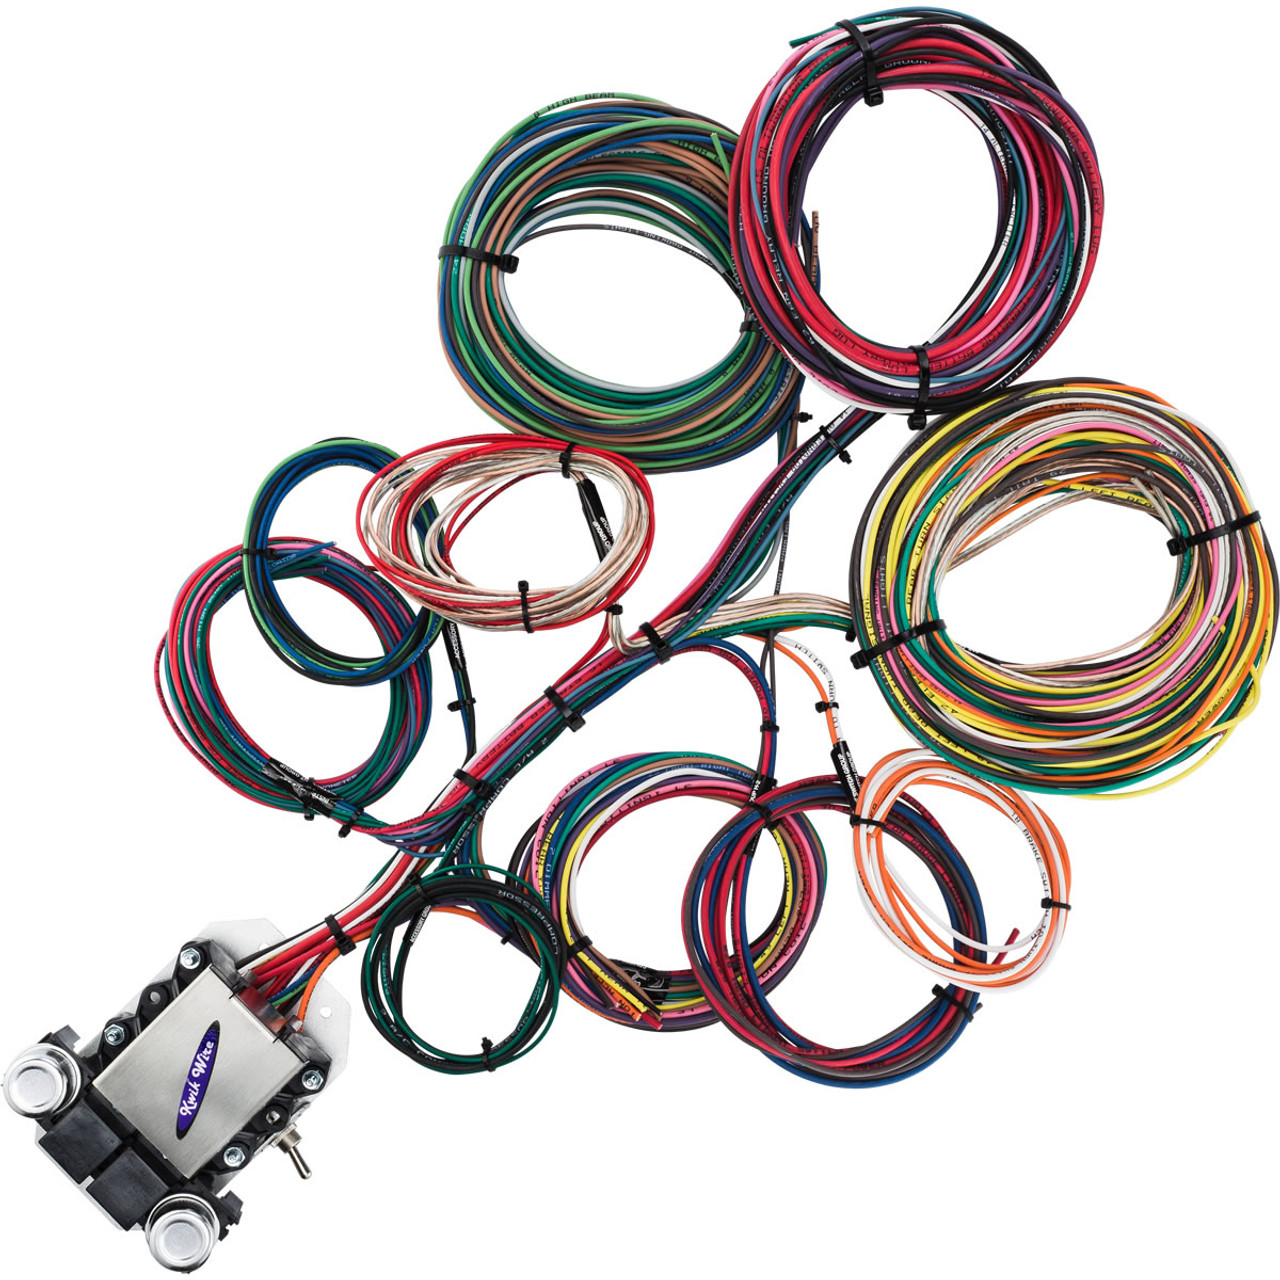 hight resolution of 14 circuit wire harness kwikwire com electrify your ride painless wire harness installation instructions 10206 wire harness instruction